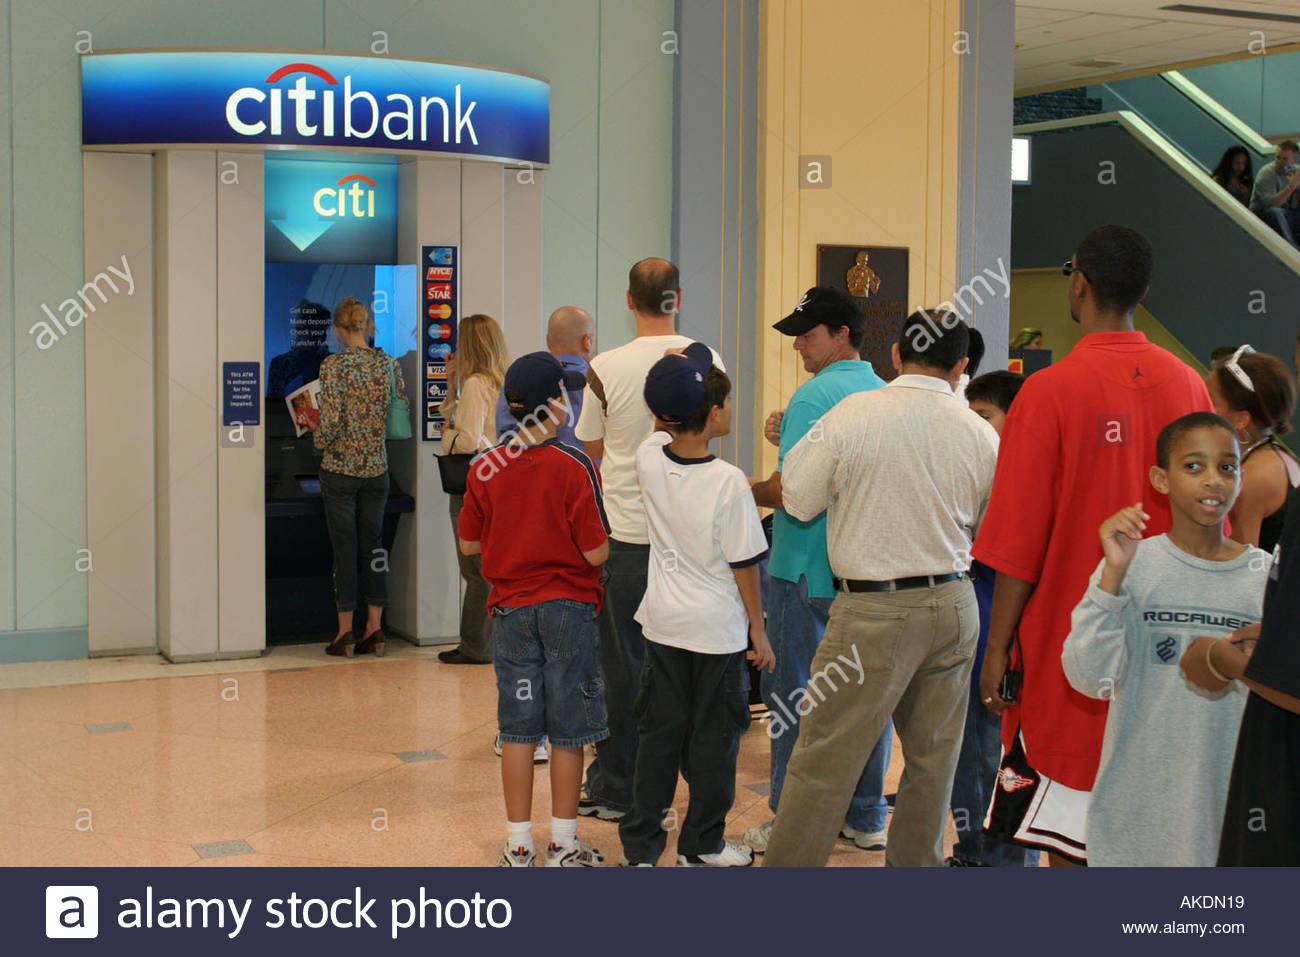 Home Design And Remodeling Show Part - 42: Miami Beach Florida Convention Center Home Design And Remodeling Show  Citibank ATM Line Money